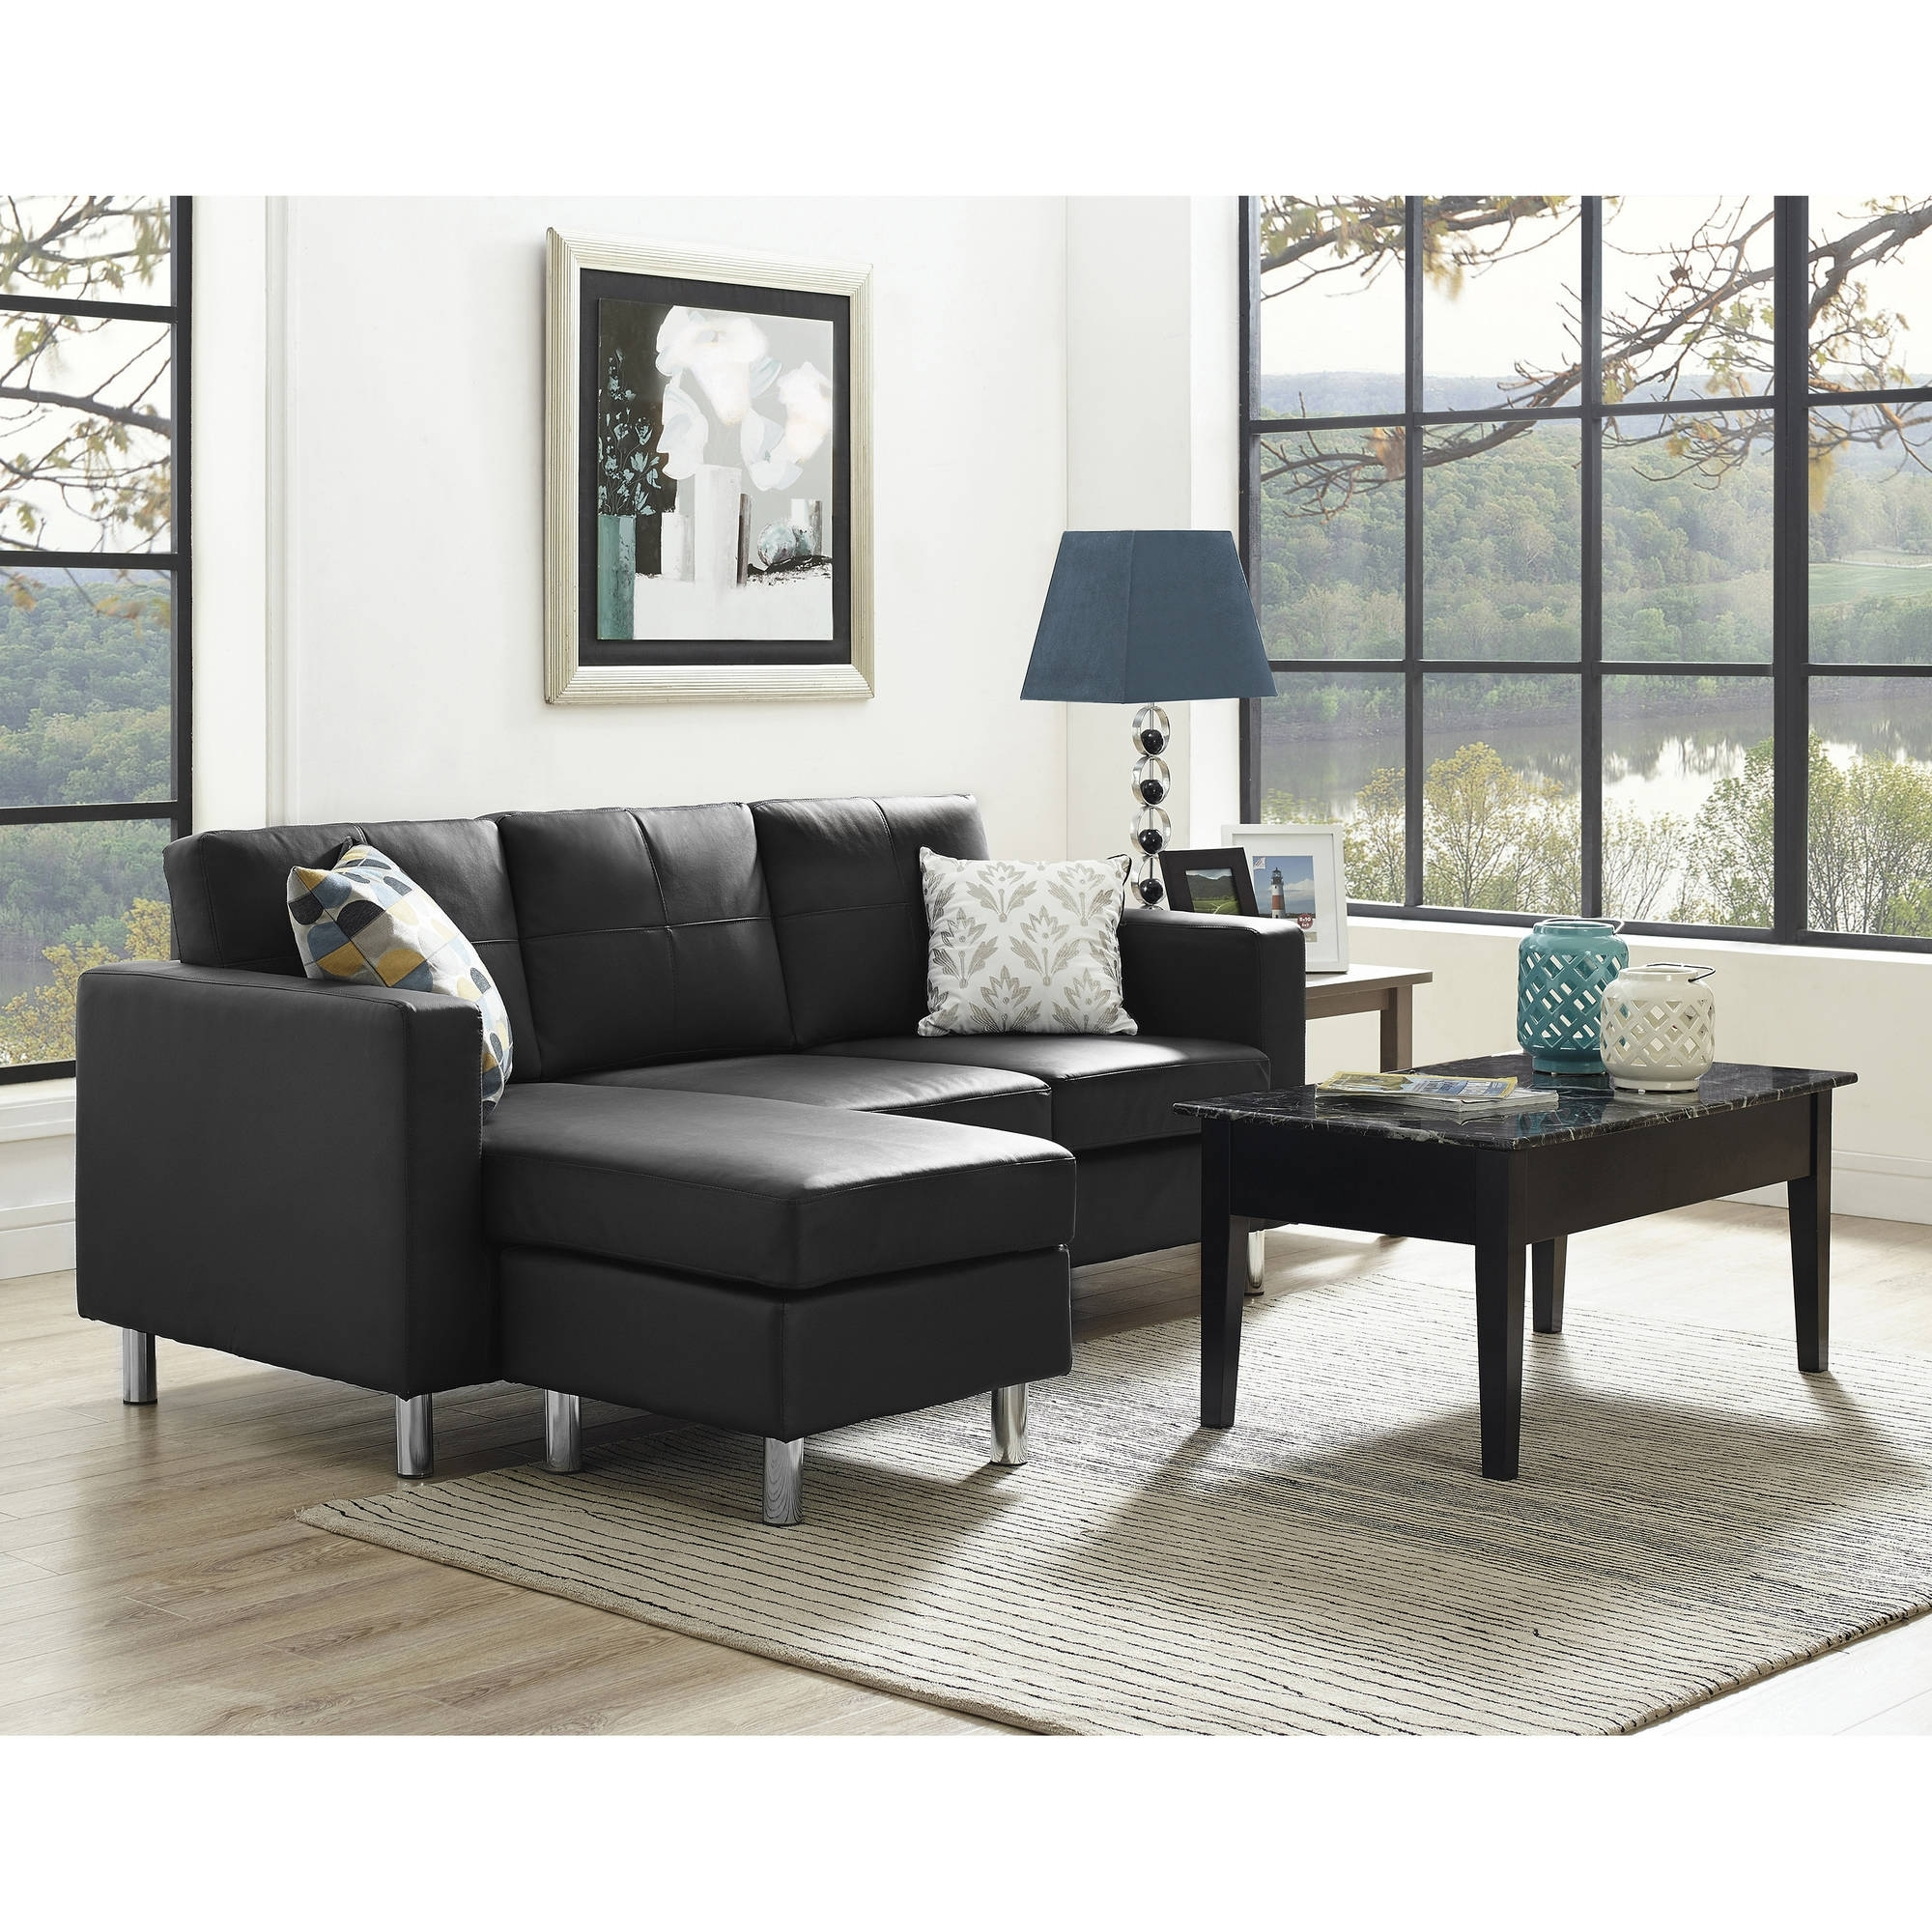 Dorel Living Small Spaces Configurable Sectional Sofa, Multiple With Regard To Sectional Sofas For Small Spaces (View 4 of 15)